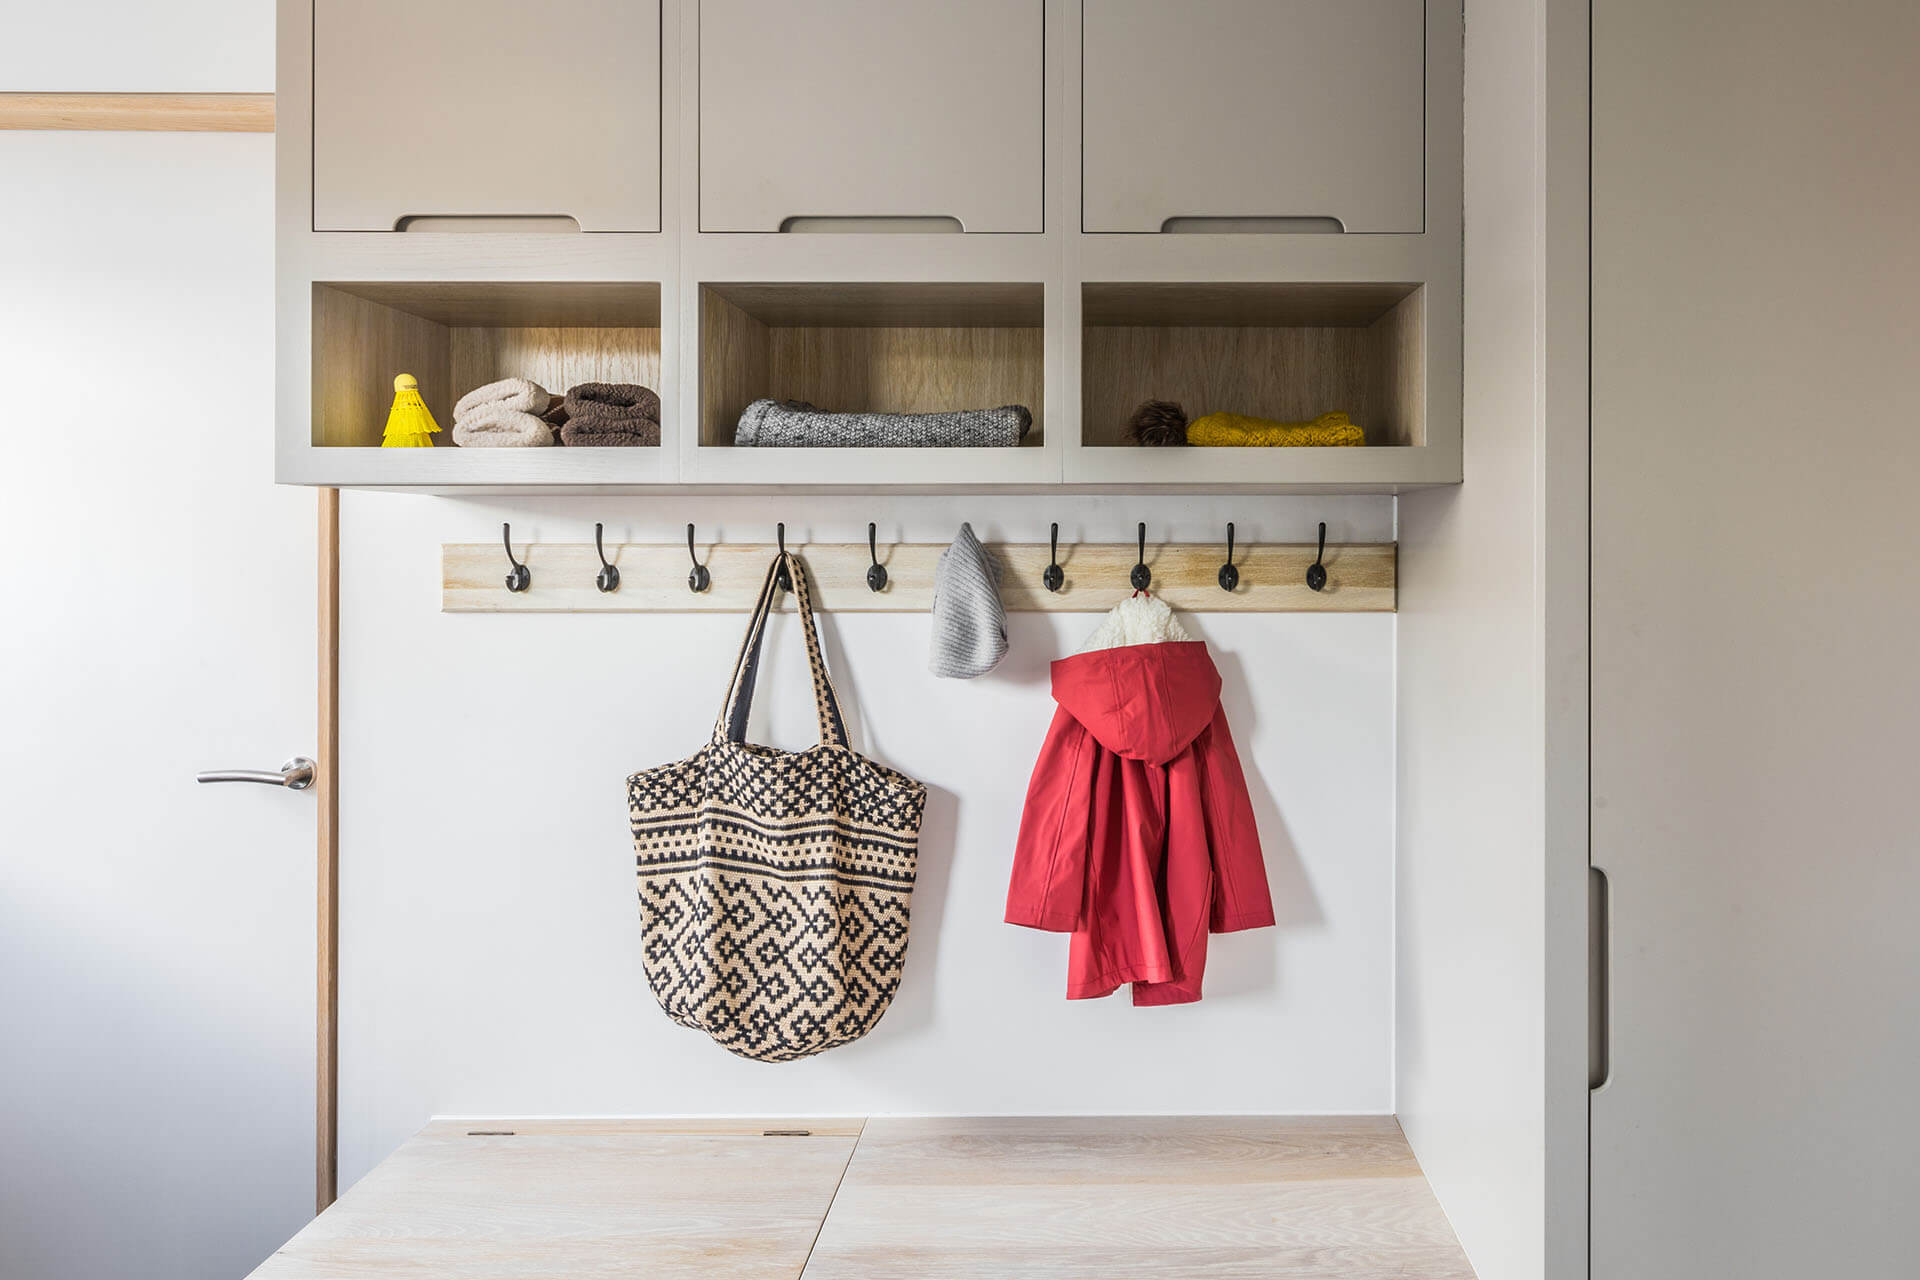 Contemporary grey industrial kitchen with boot room storage and coat hooks